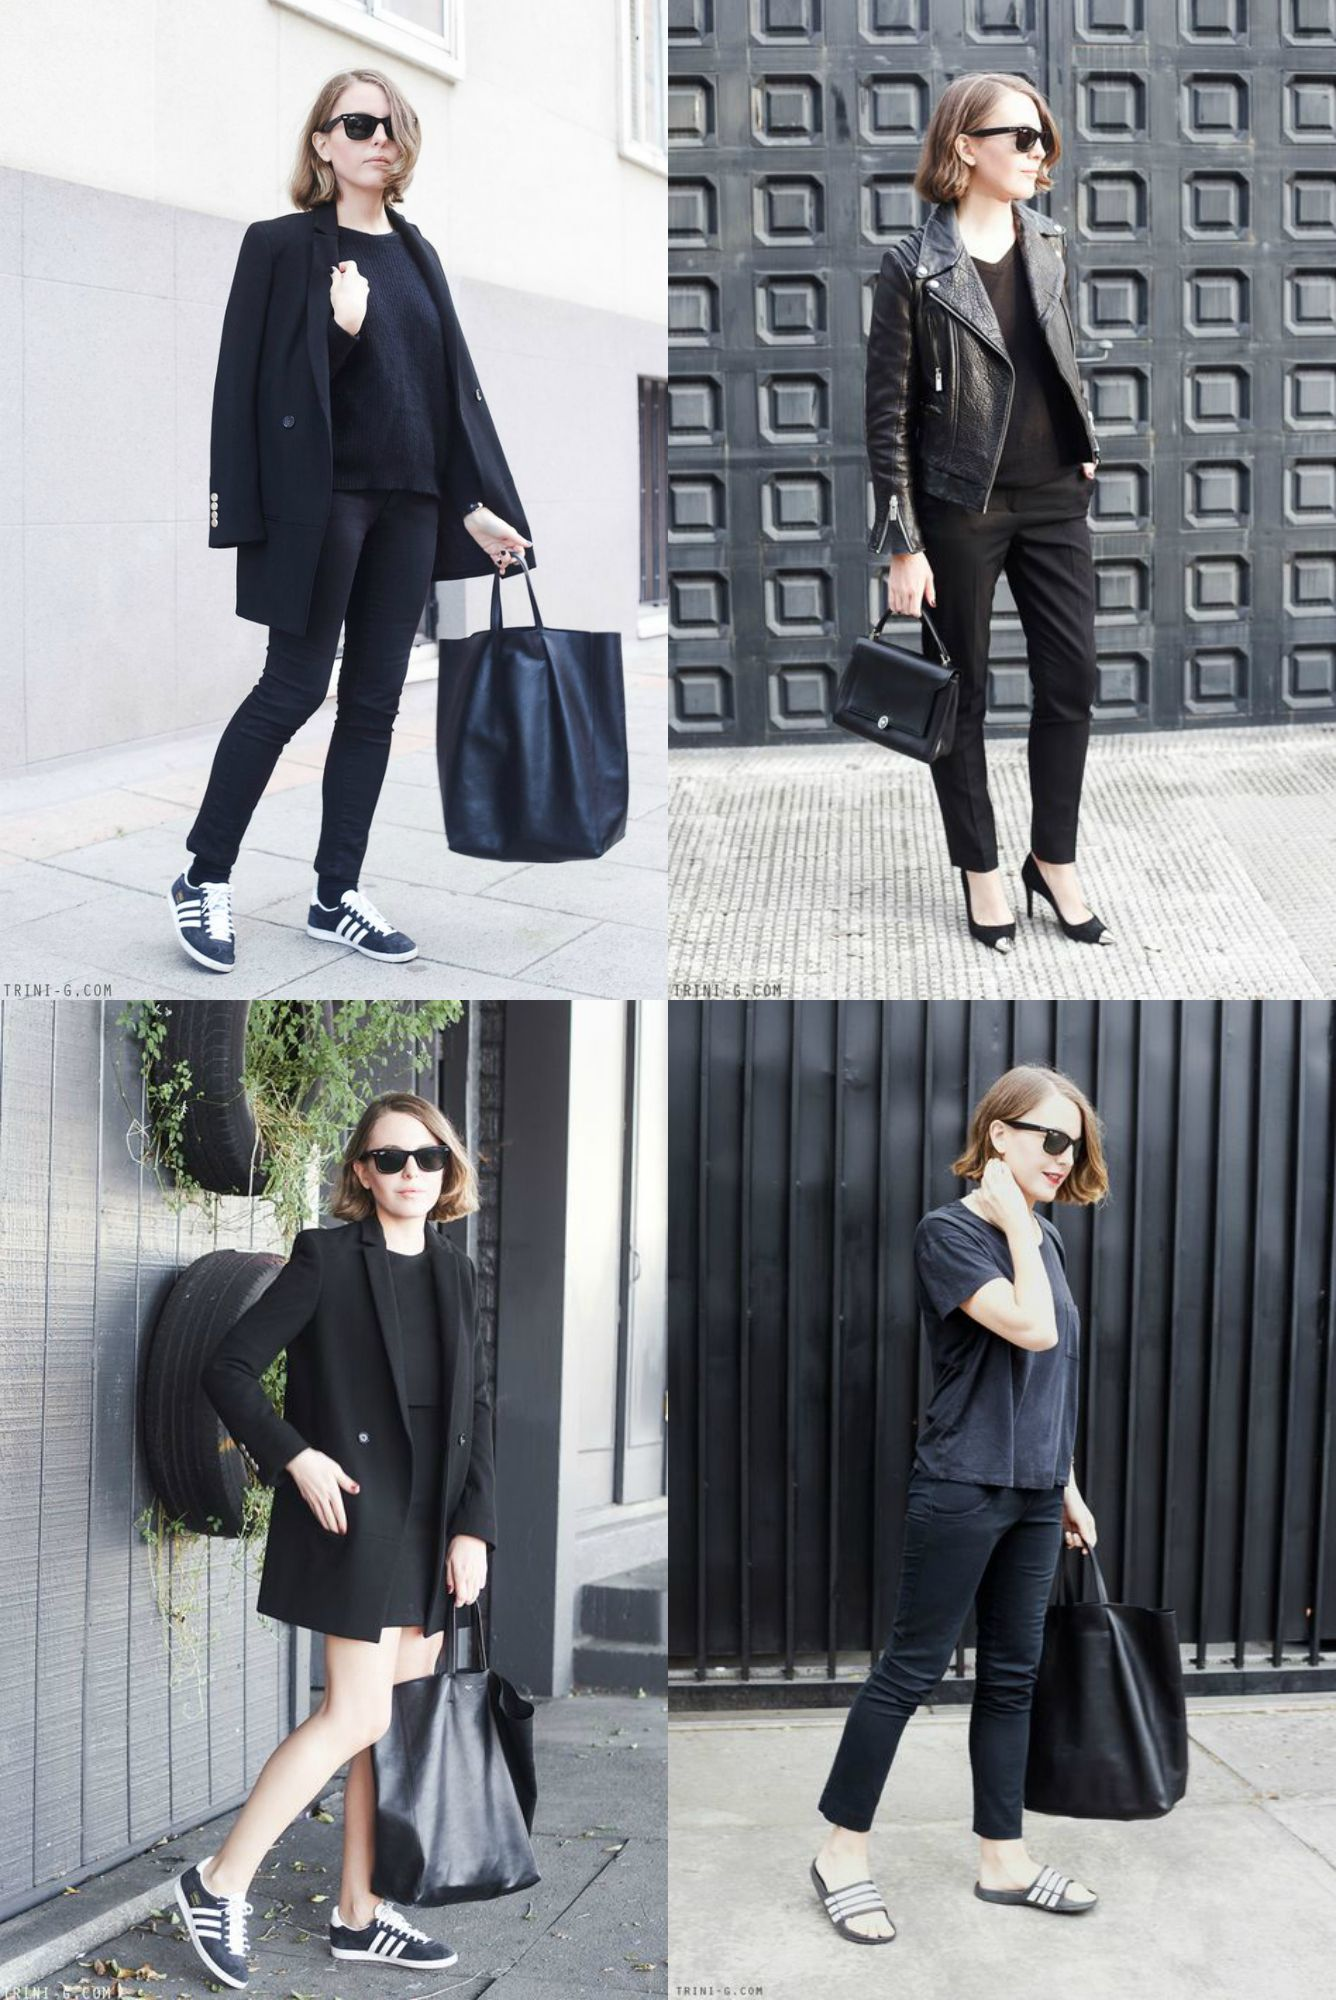 WINTER 2019  OUTFIT 9 in 2019  3953c19c05926